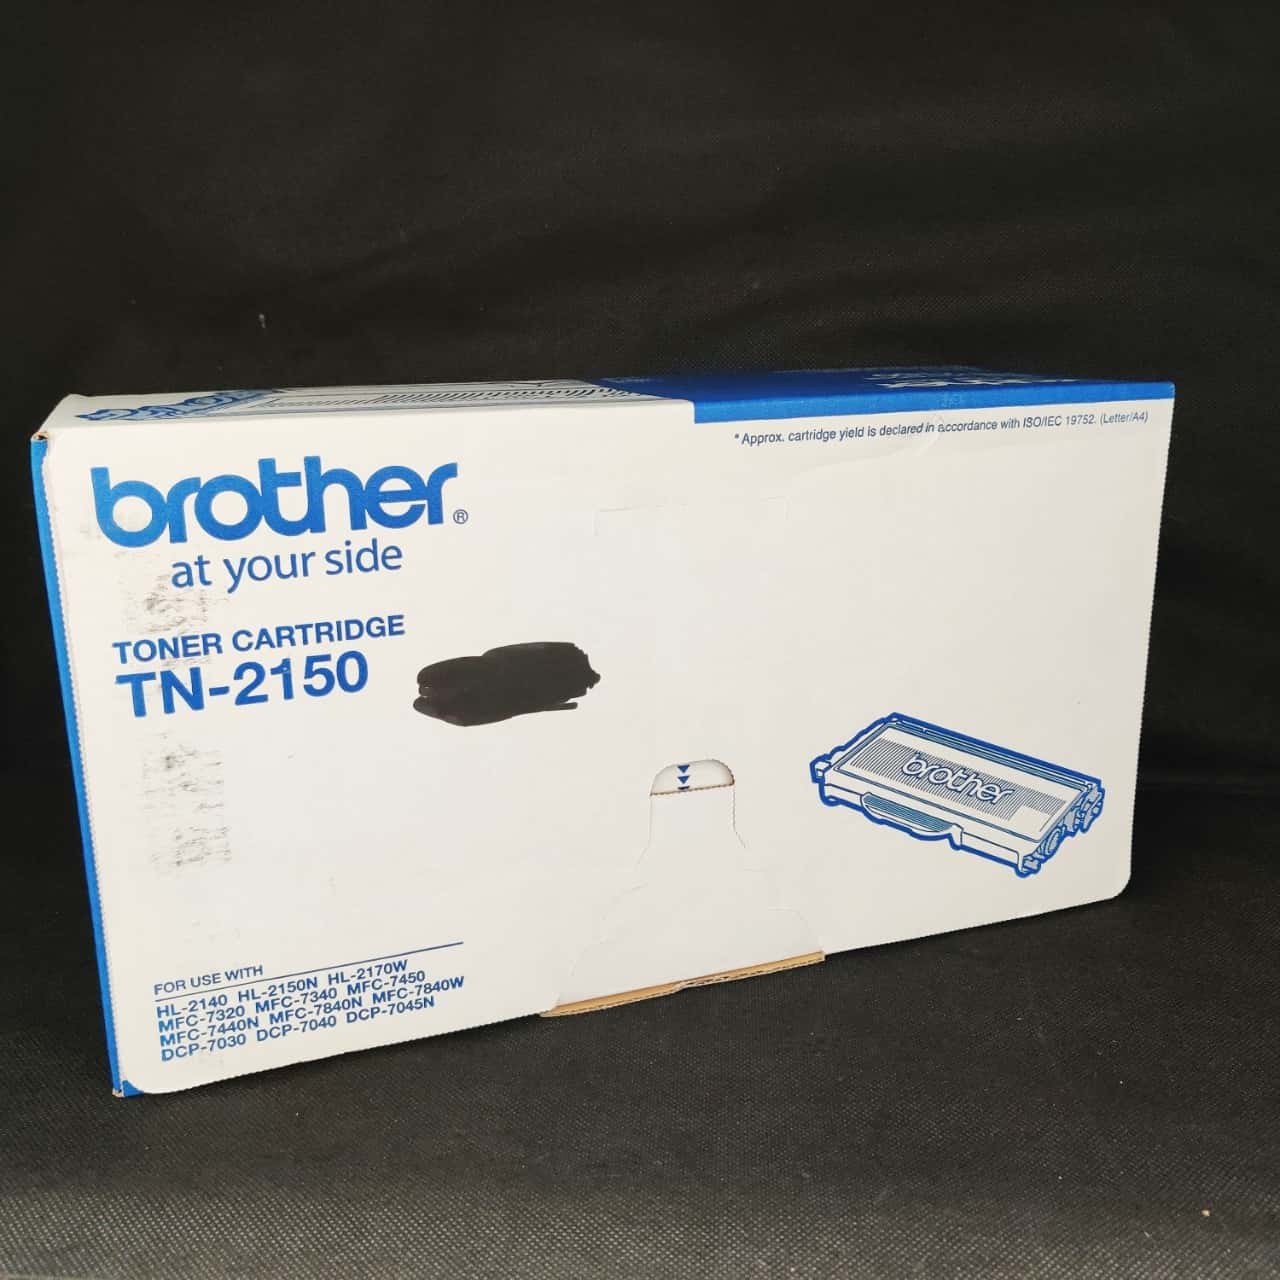 Brother TN-2150 Toner Cartridge for Brother Printers as per list on photo